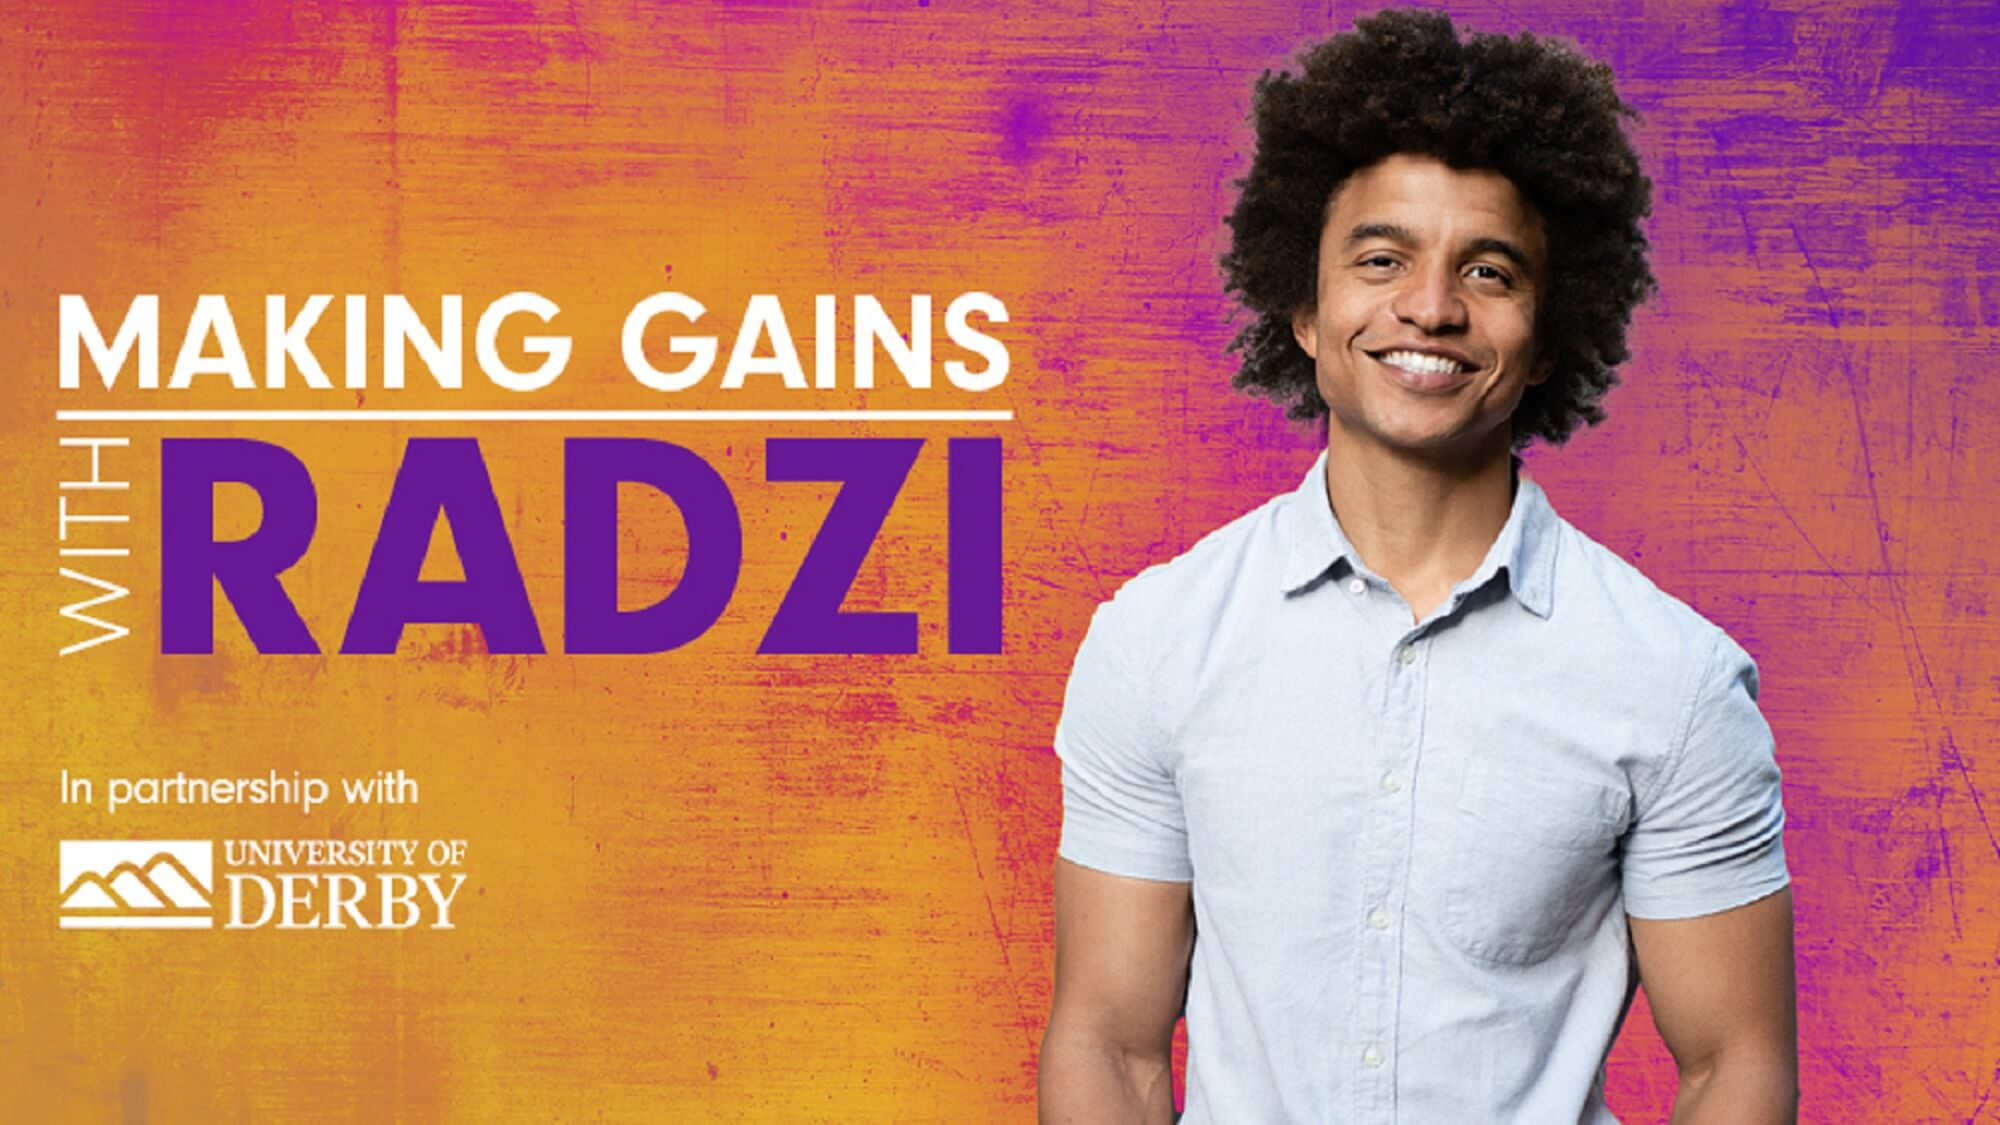 Episode one of Making Gains, hosted by Radzi Chinyanganya, featuring an interview with WWE star Mark Henry